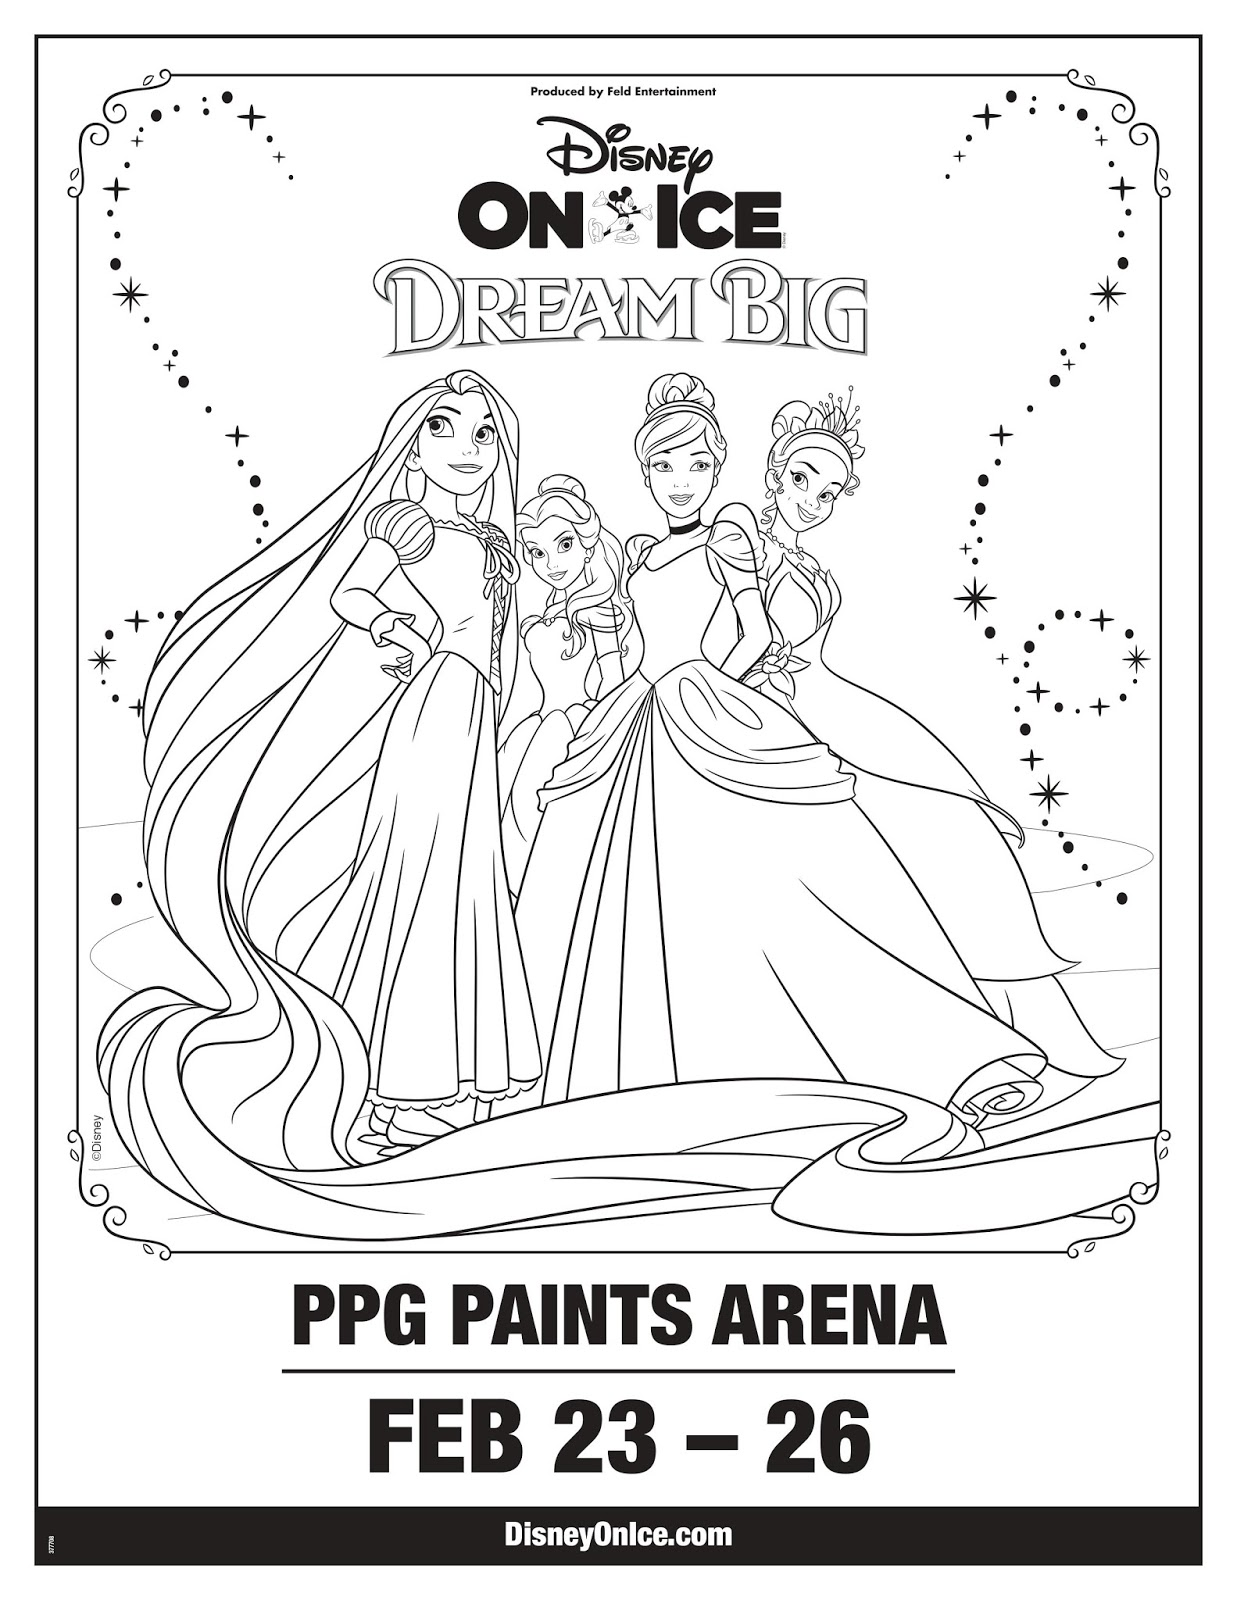 Pgh Momtourage: Disney on Ice Dream Big at PPG Paints Arena